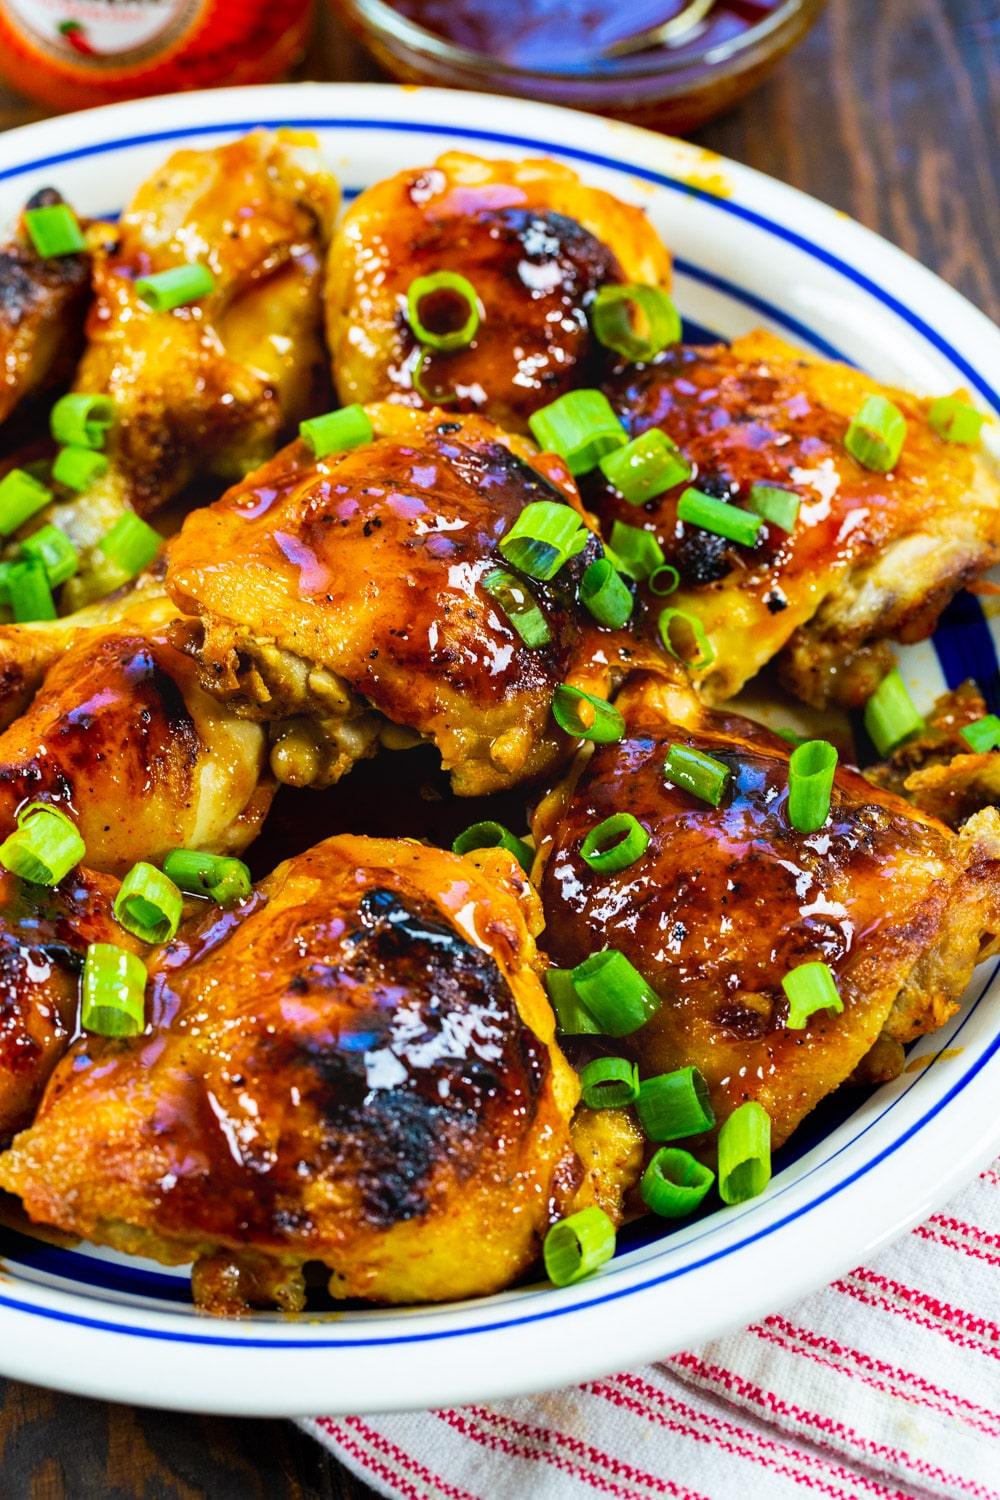 Cooked chicken topped with green onions.